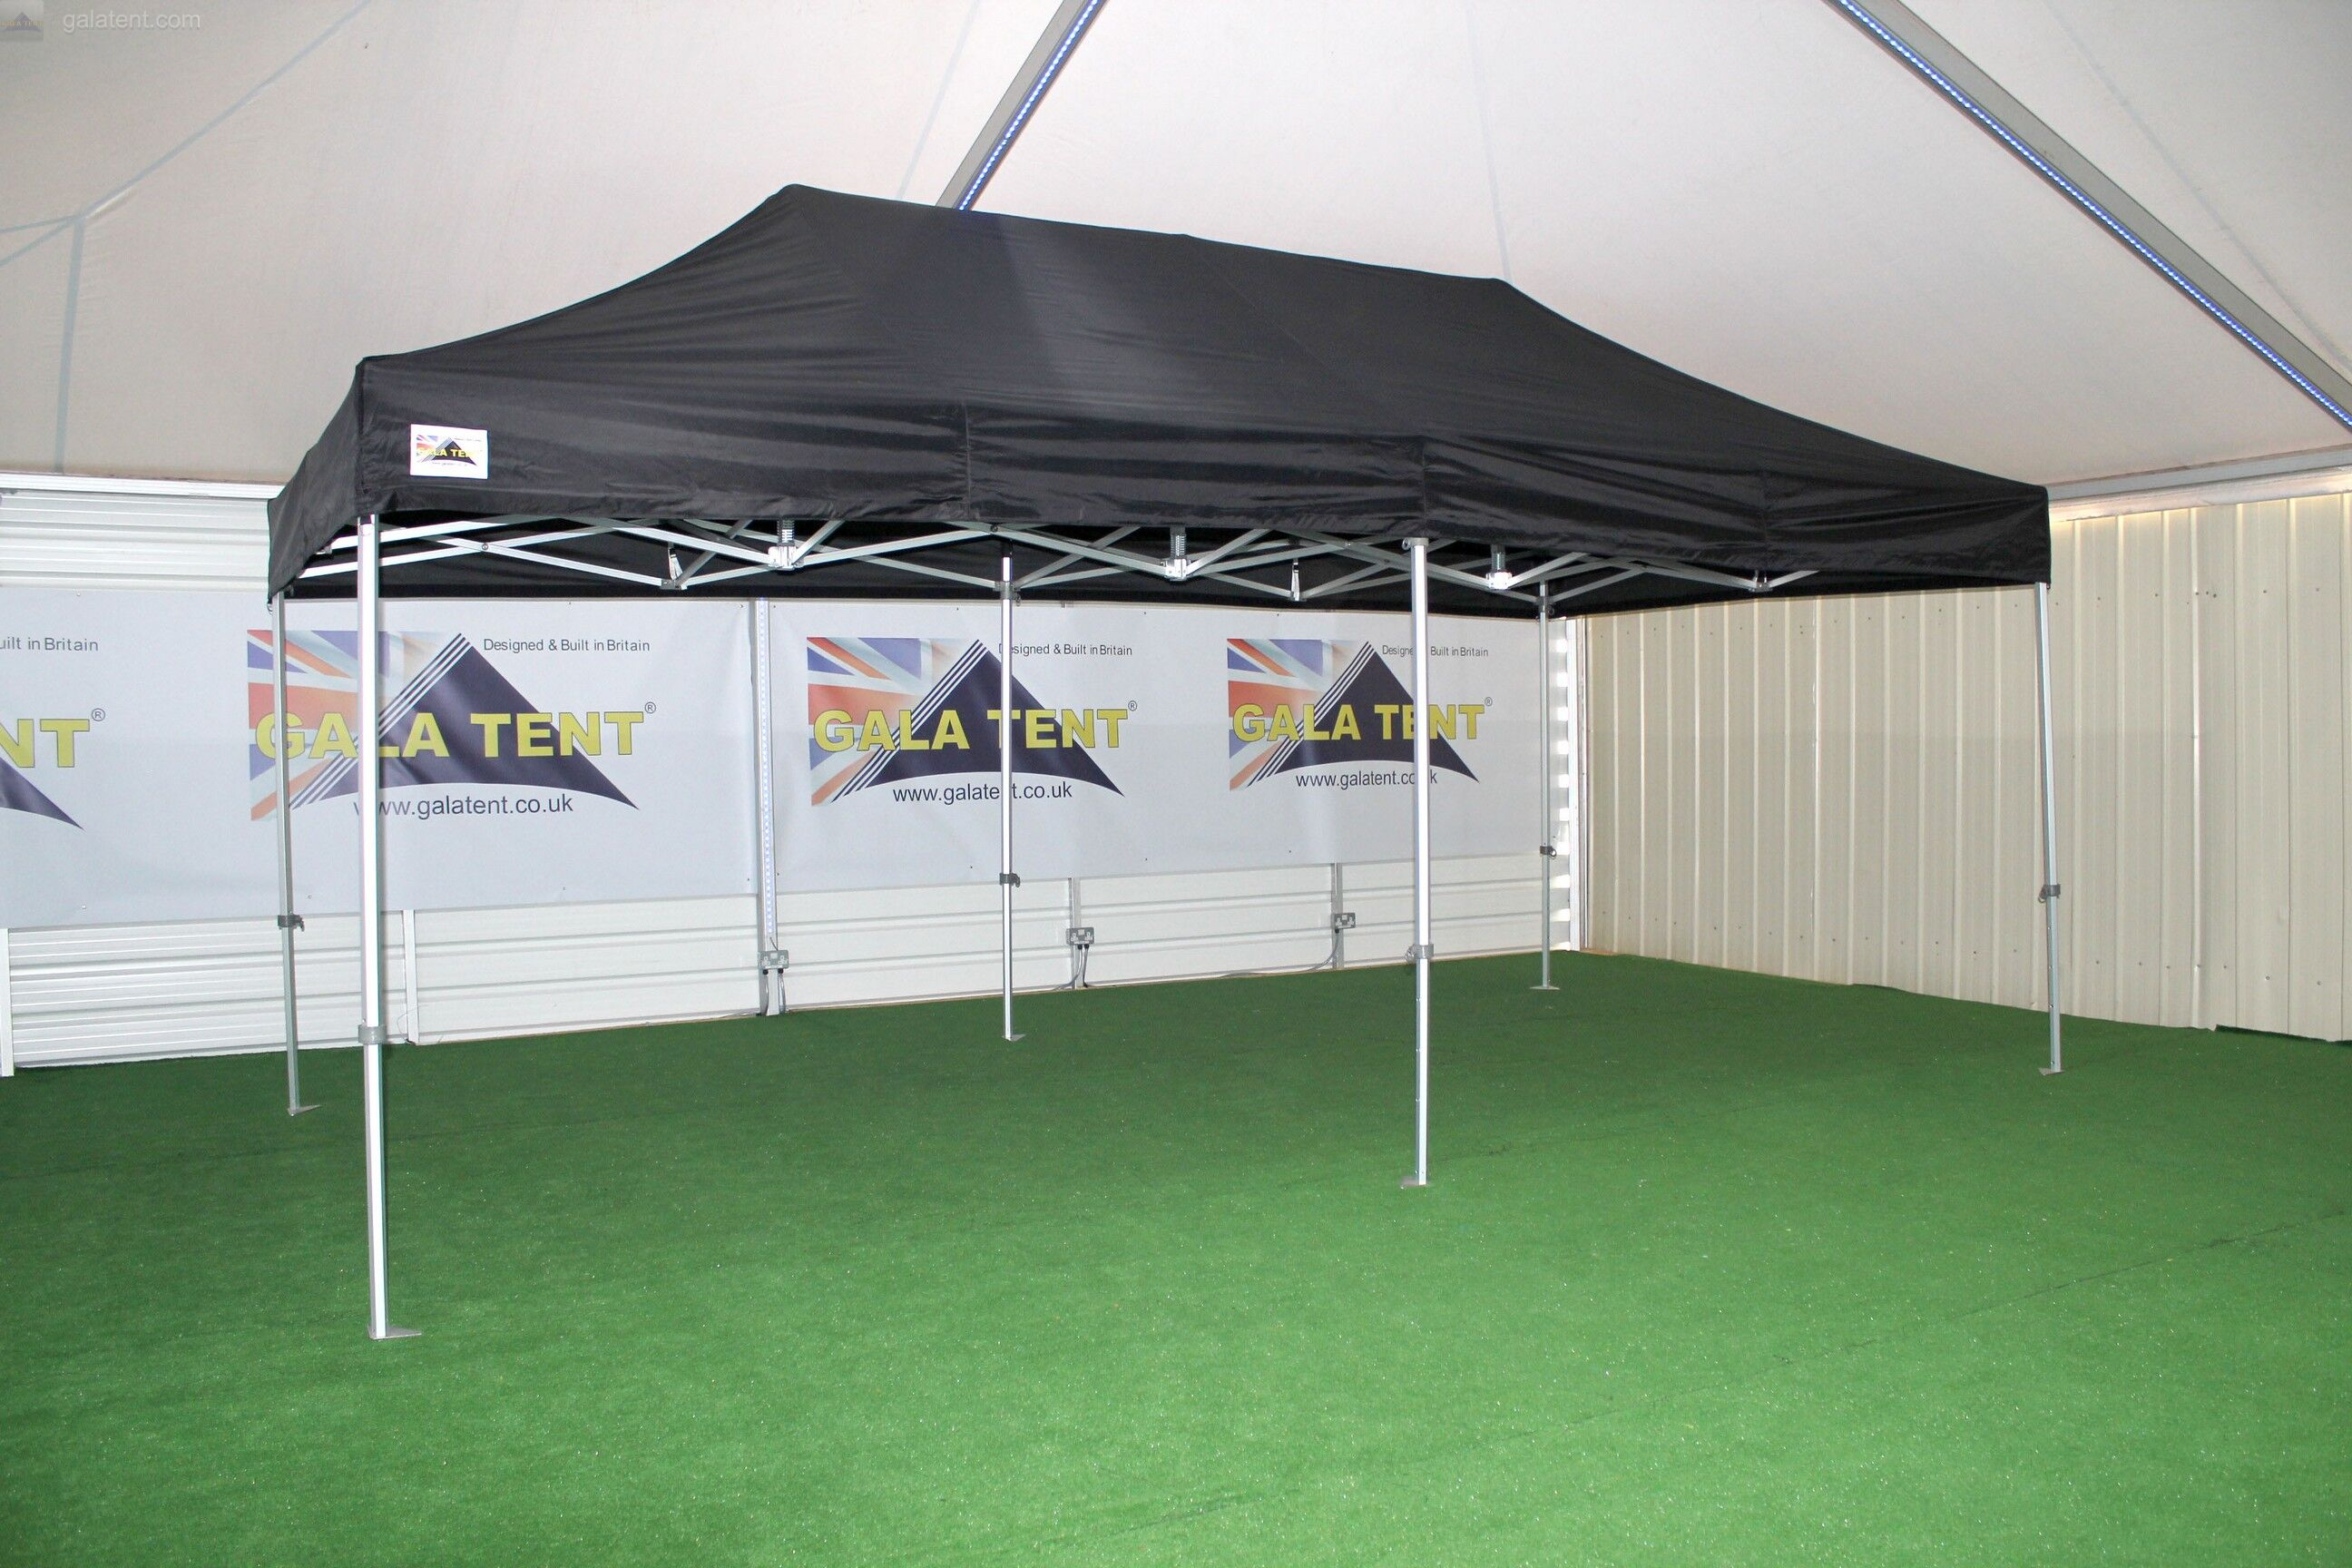 Yard, Garden & Outdoor Living Garden Structures & Shade 3x6m Popup Gazebo Party Tent Marquee To Have A Unique National Style